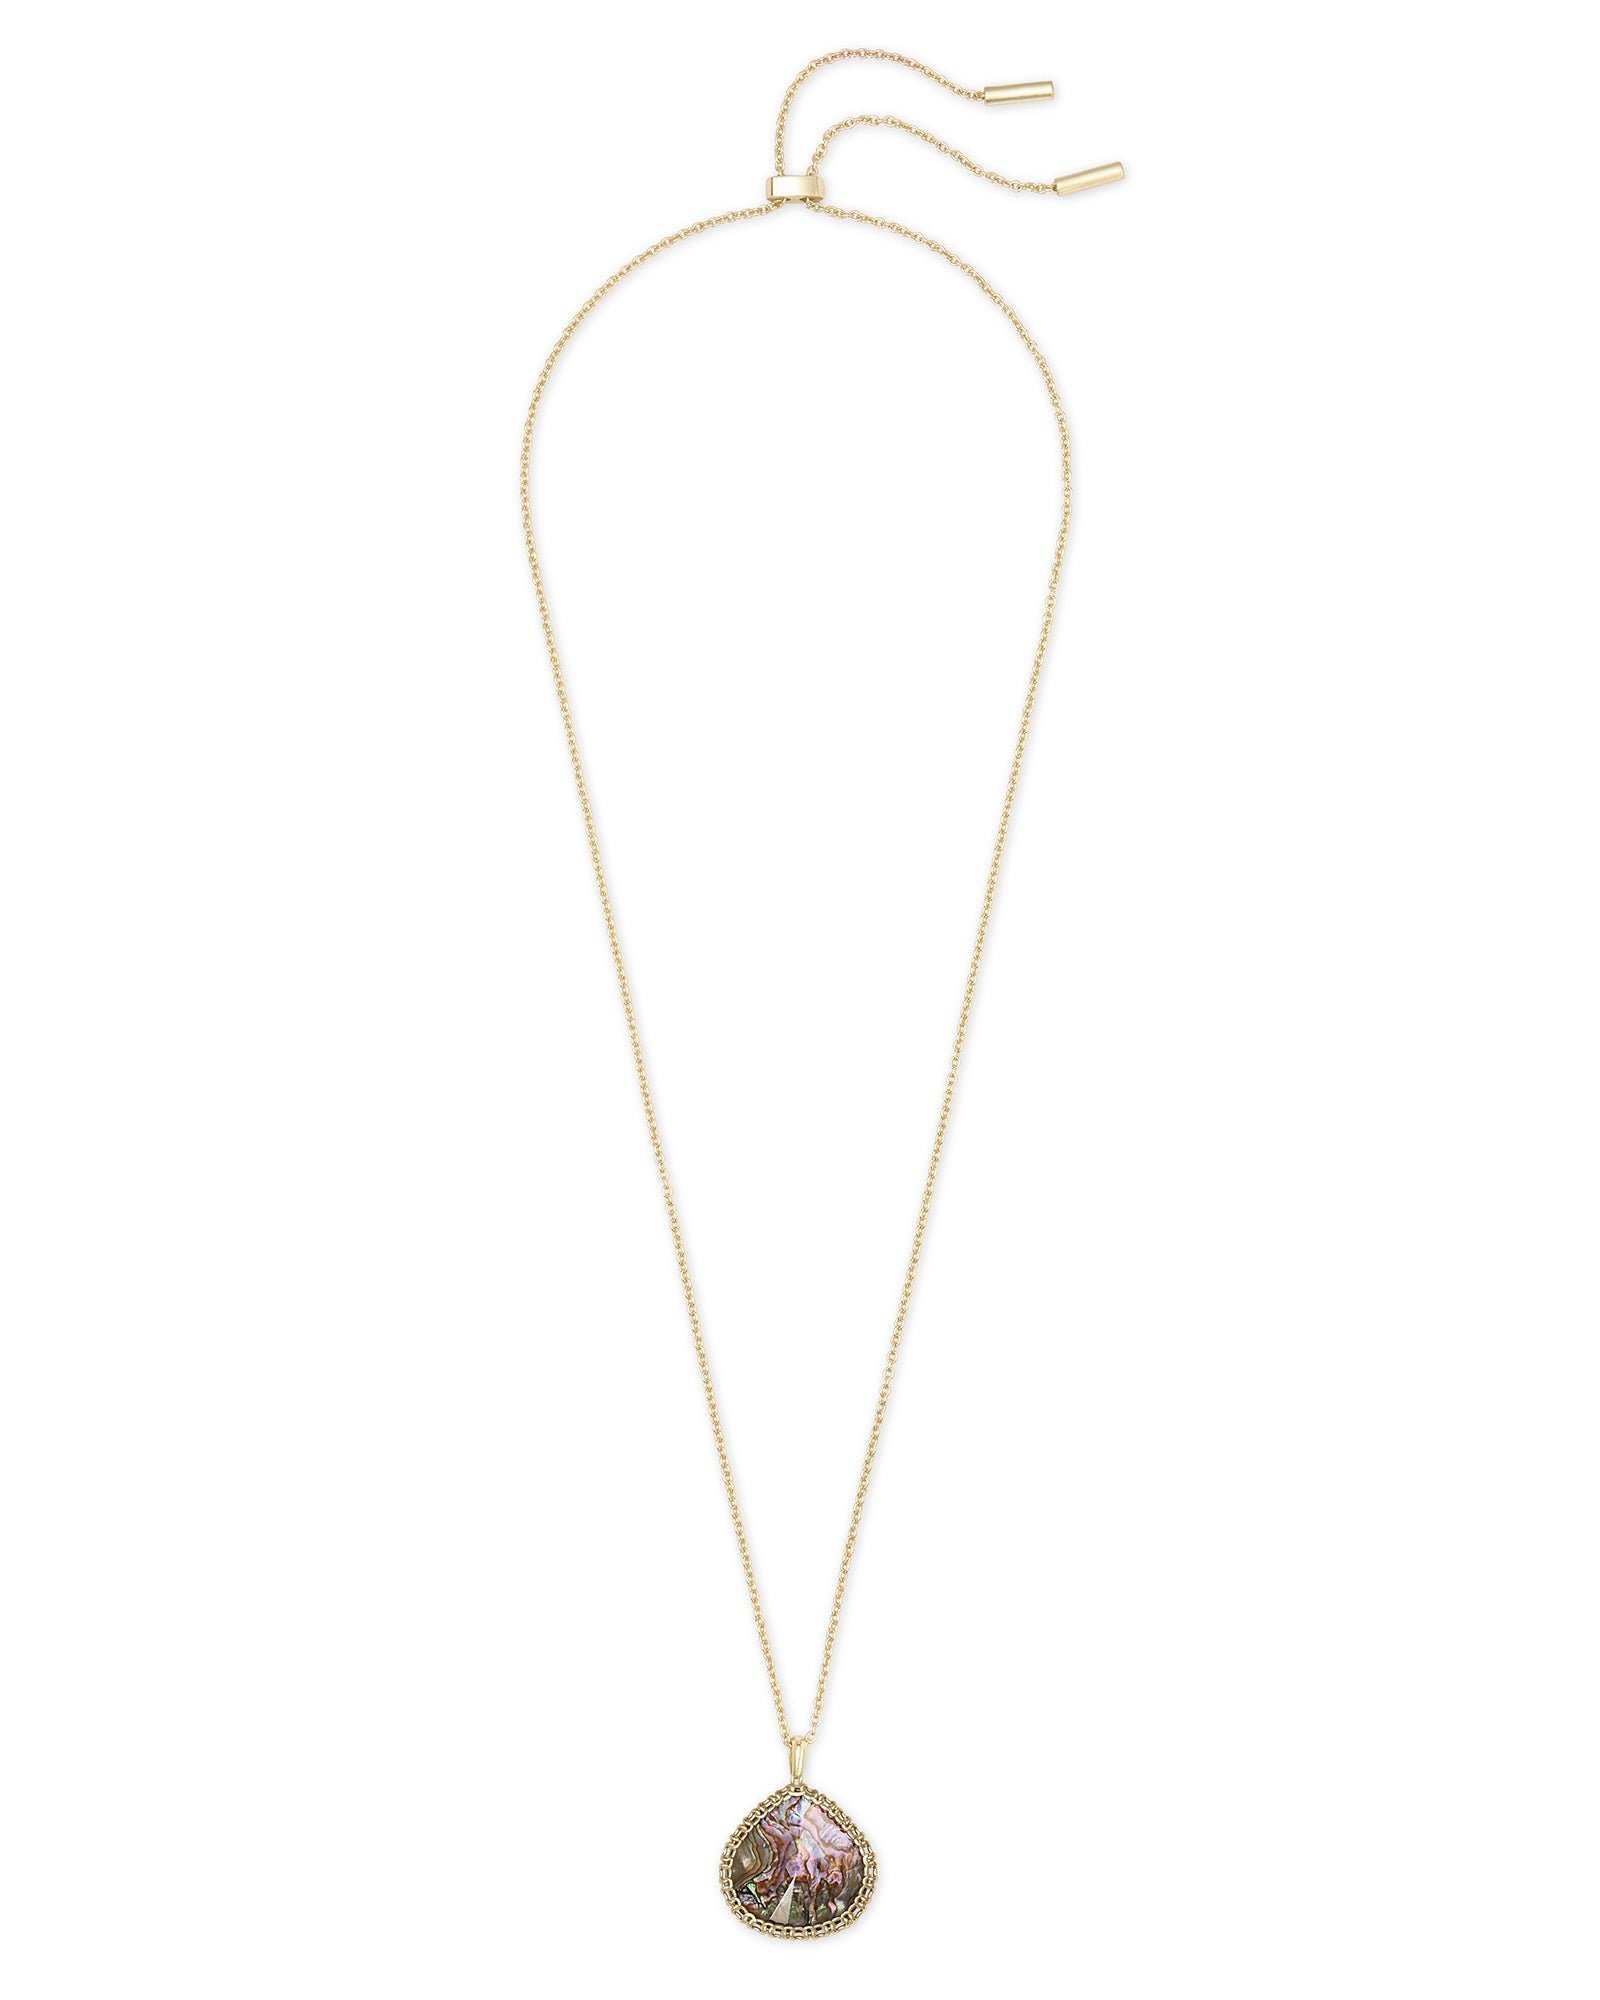 Kenzie Gold Necklace in Nude Abalone